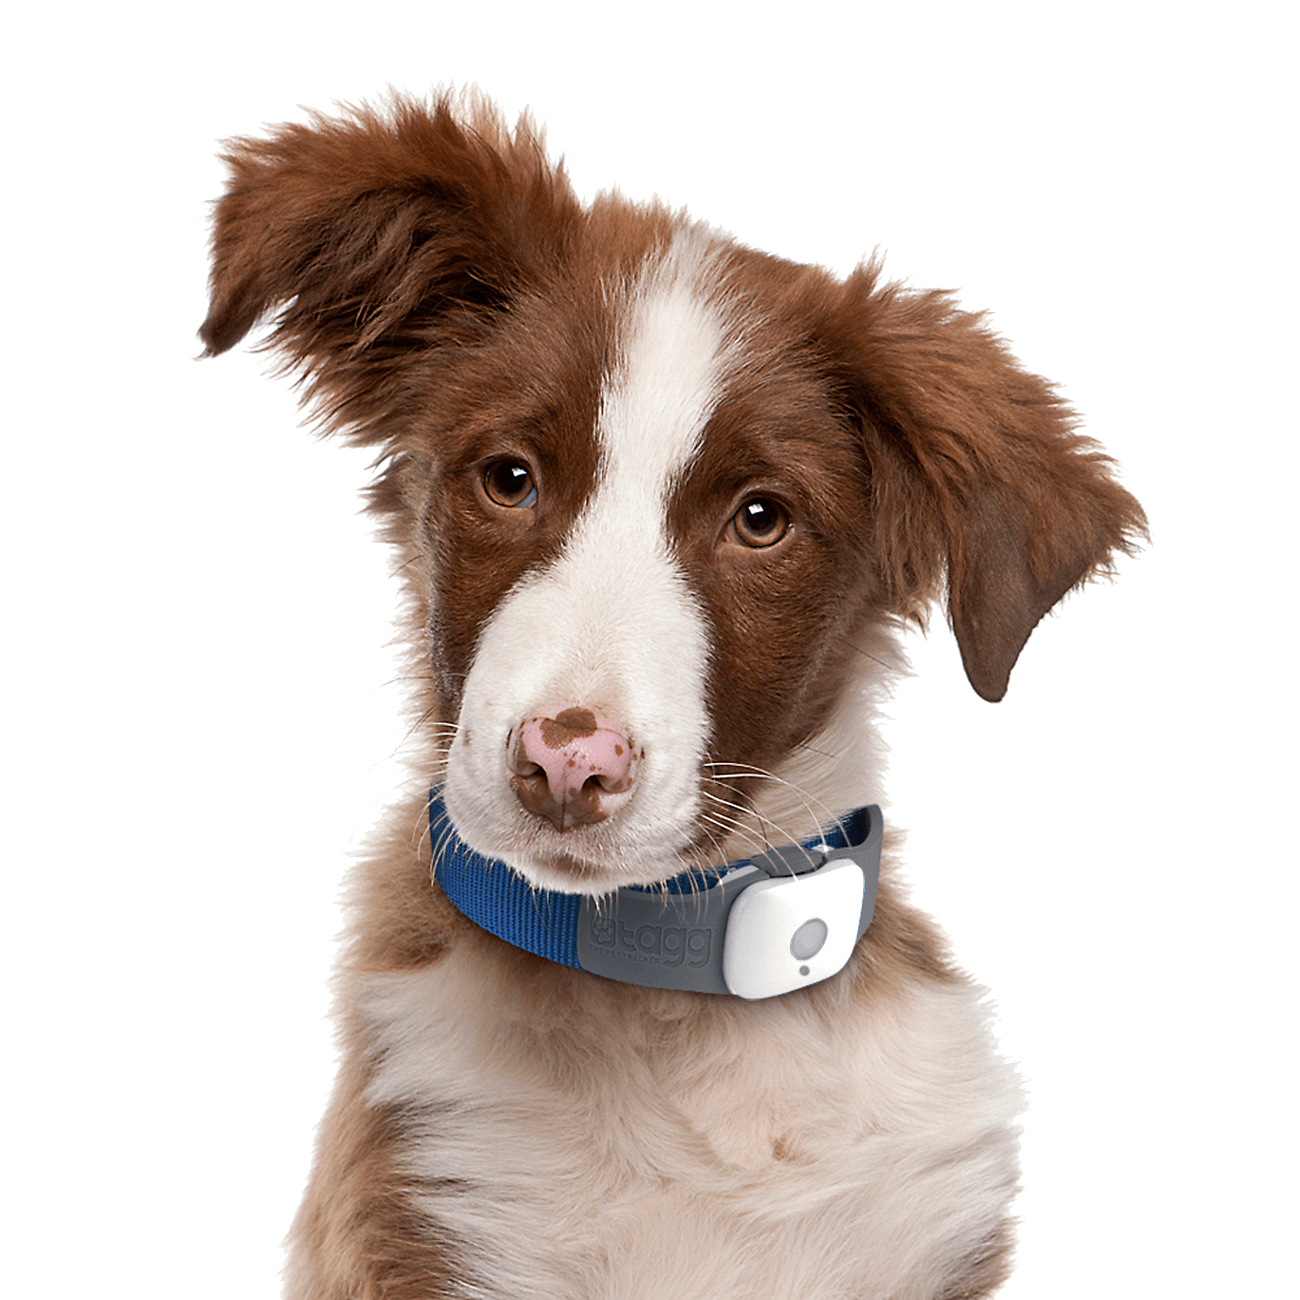 Collie dog clipart vector transparent library 77 Dog Png Image Picture Download Dogs vector transparent library